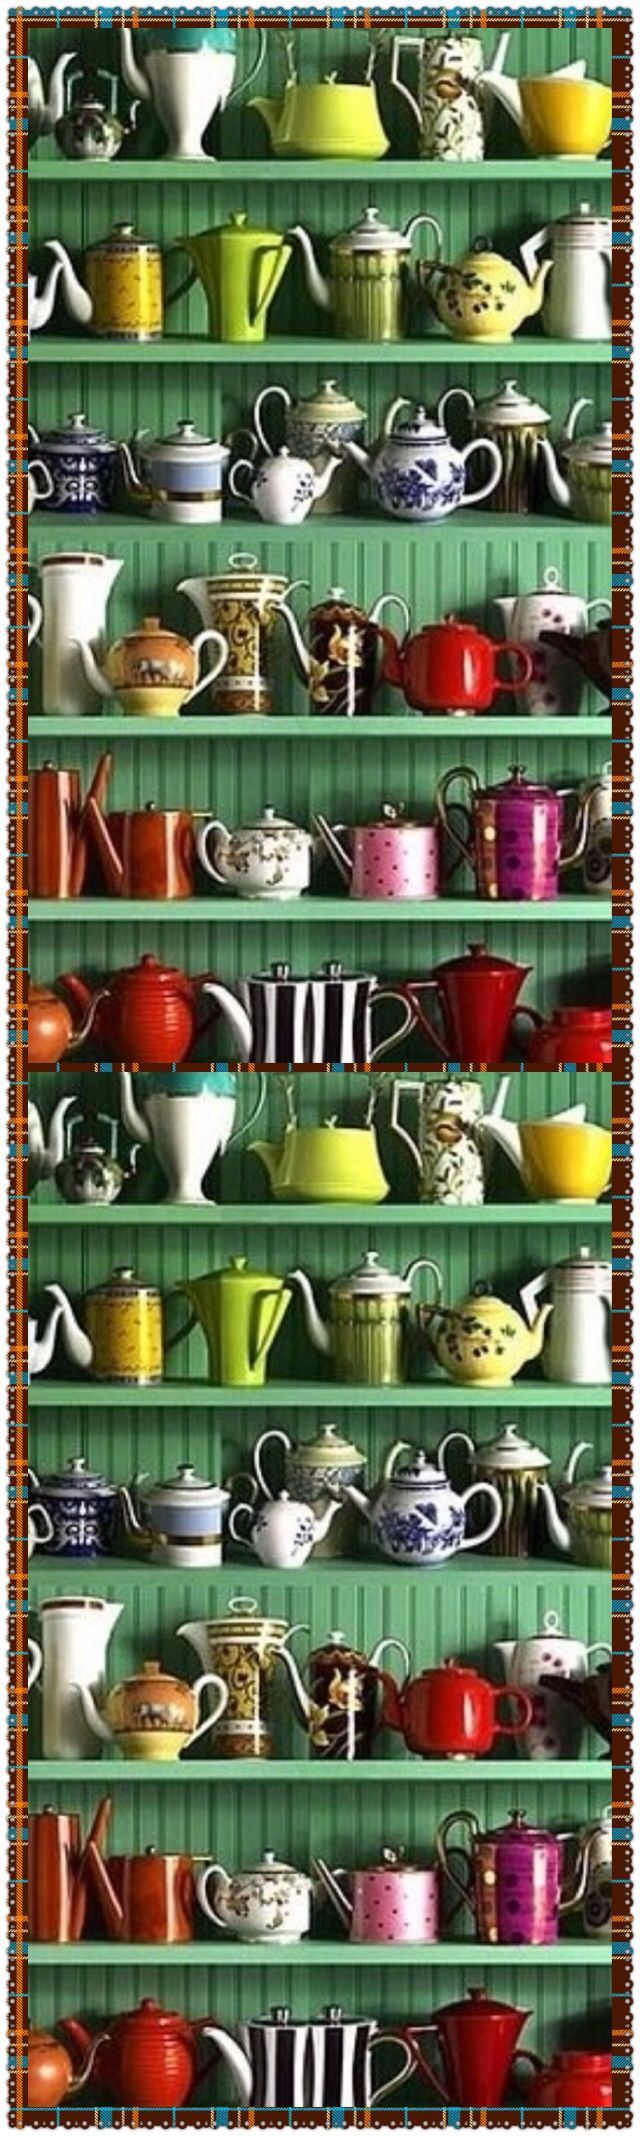 Had to re-pin this...because I've got a baker's rack slap-full of tea pots and tea cups, and this reminded me of it!